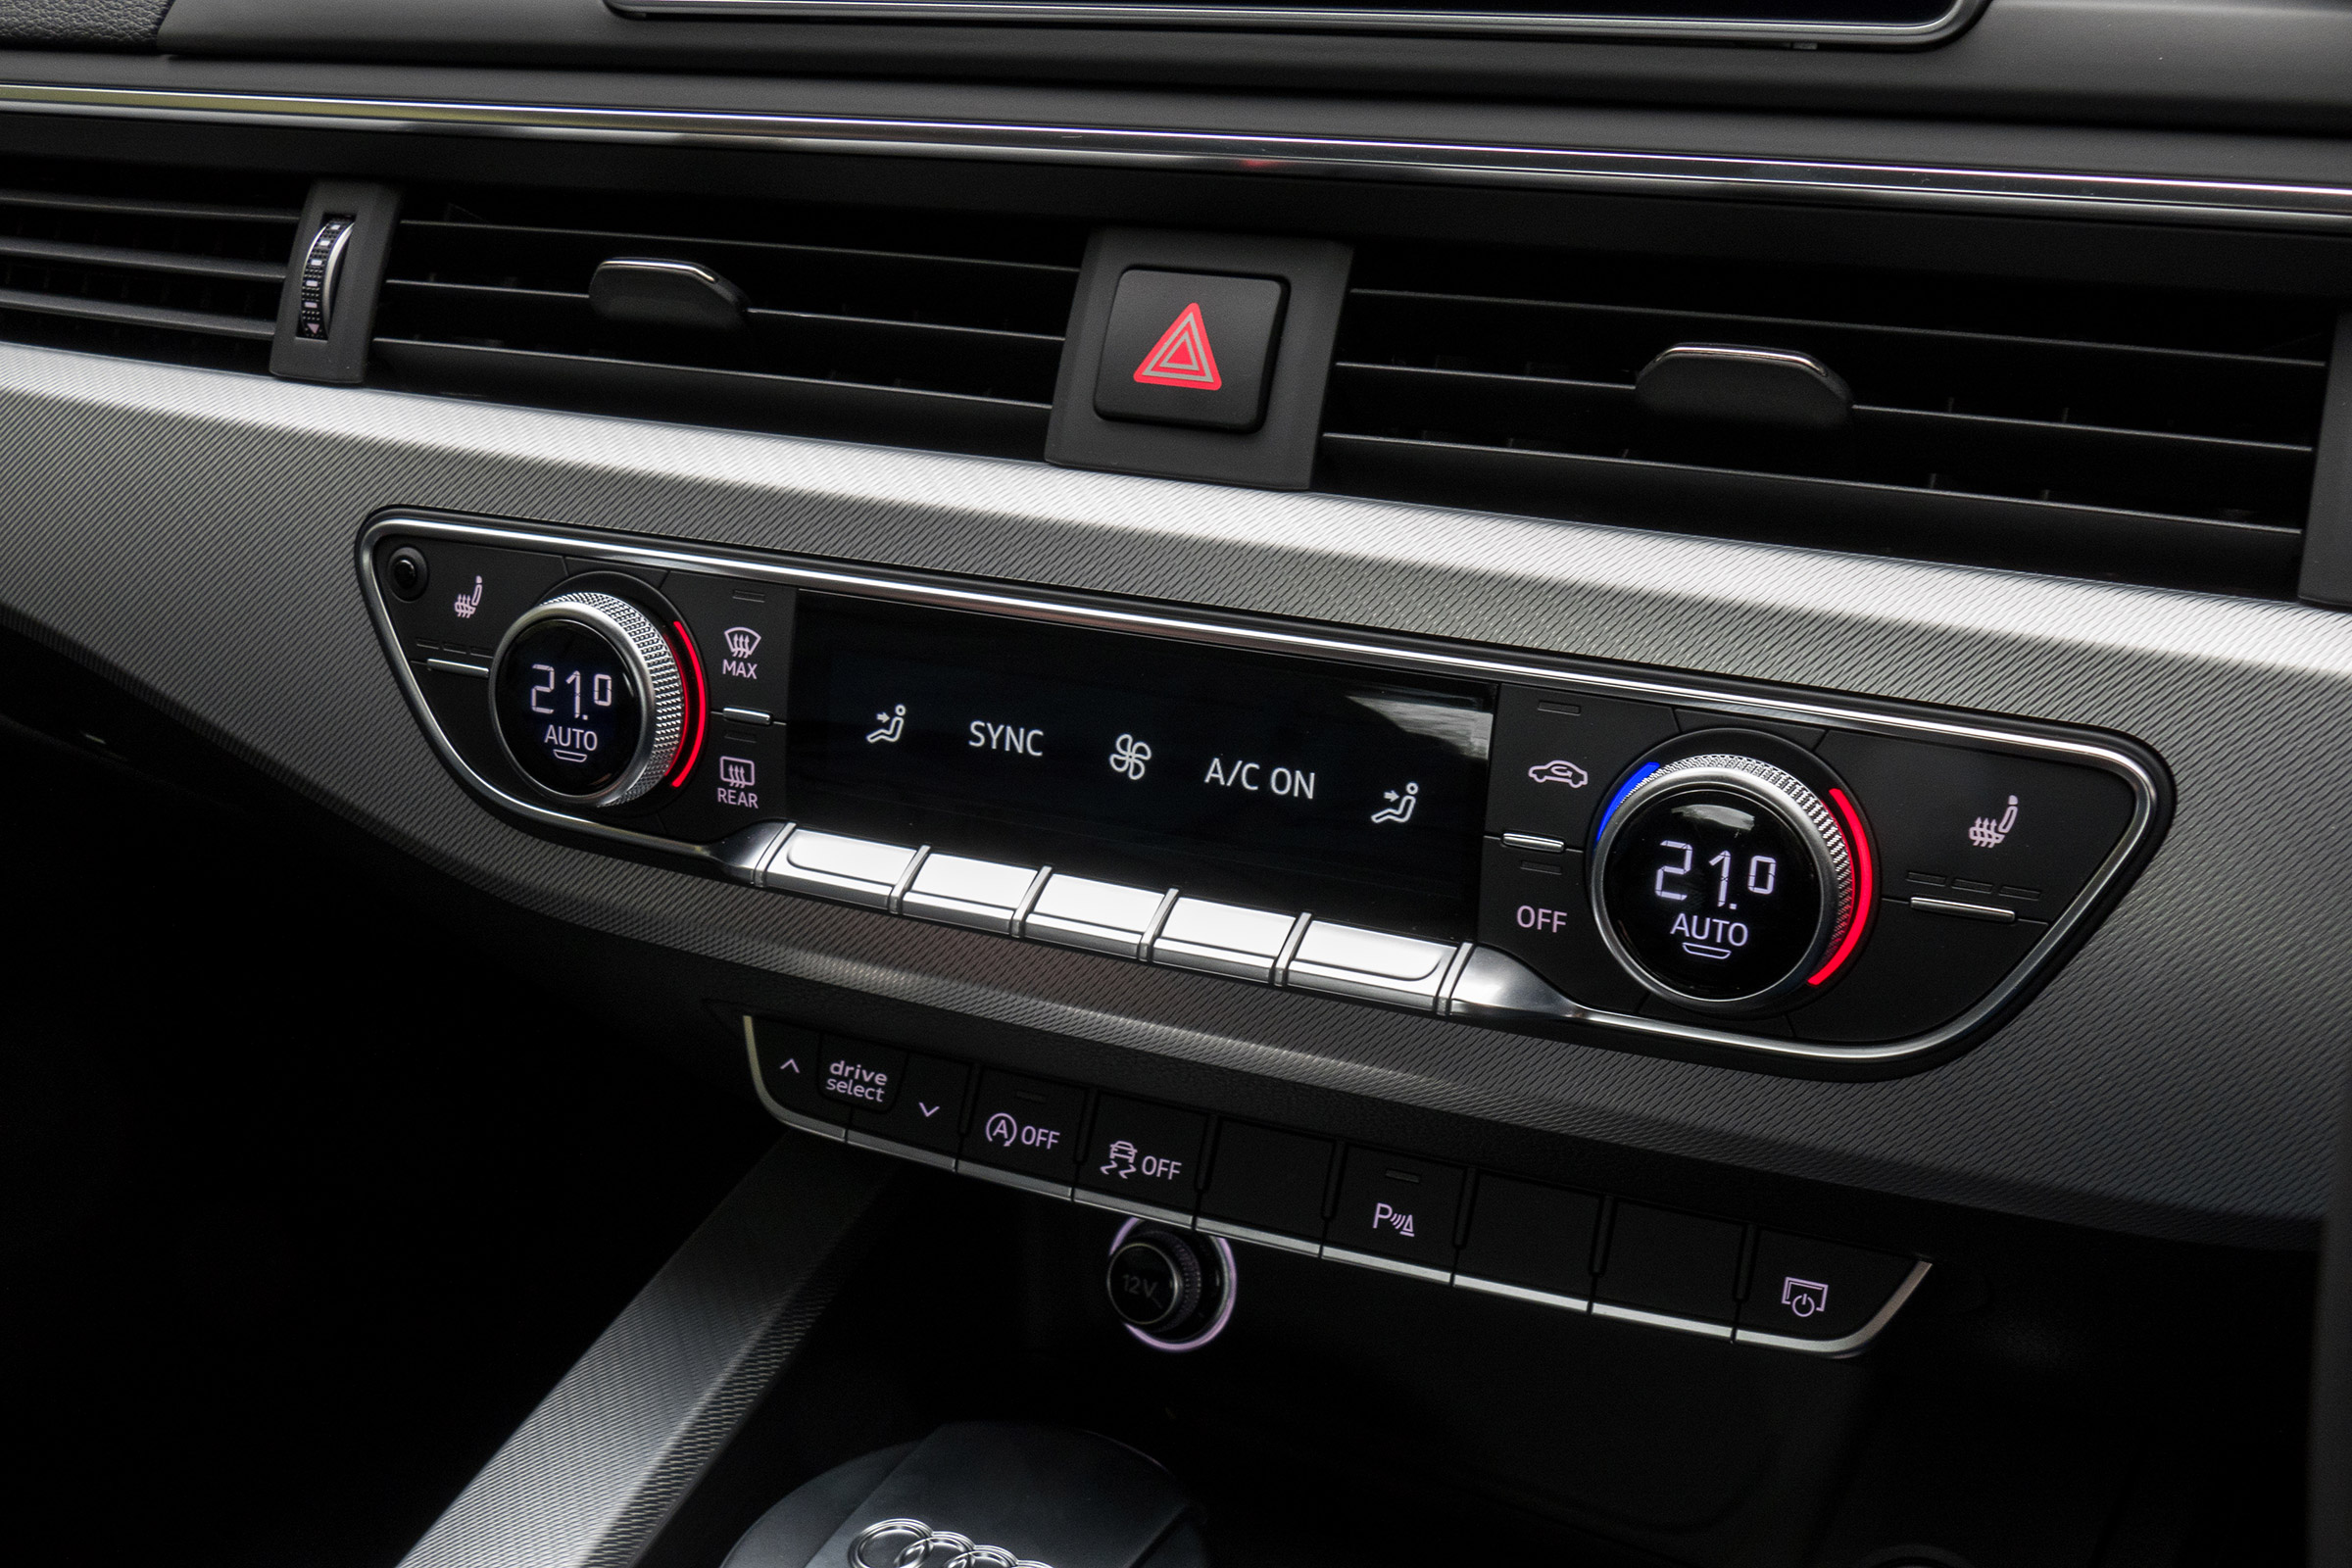 2017 Audi A5 Coupe Interior View Climate Control (View 7 of 21)